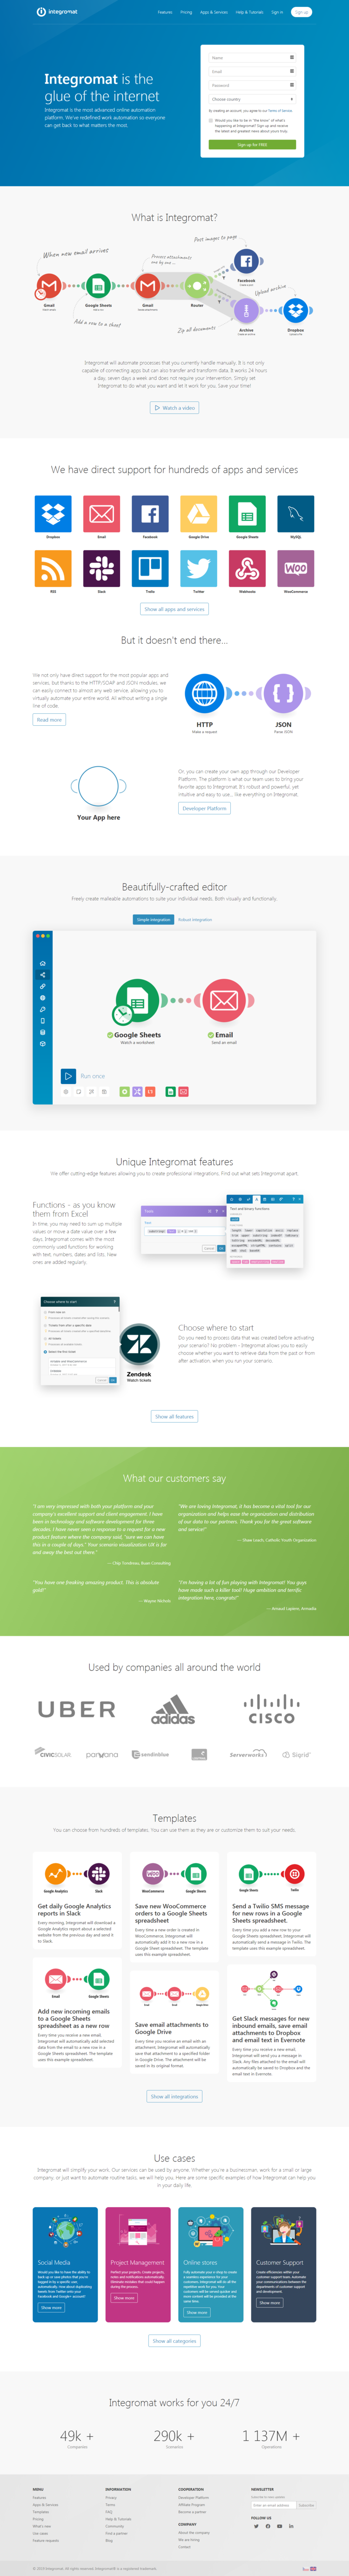 How to recreate the Integromat landing page look and feel in Ontraport